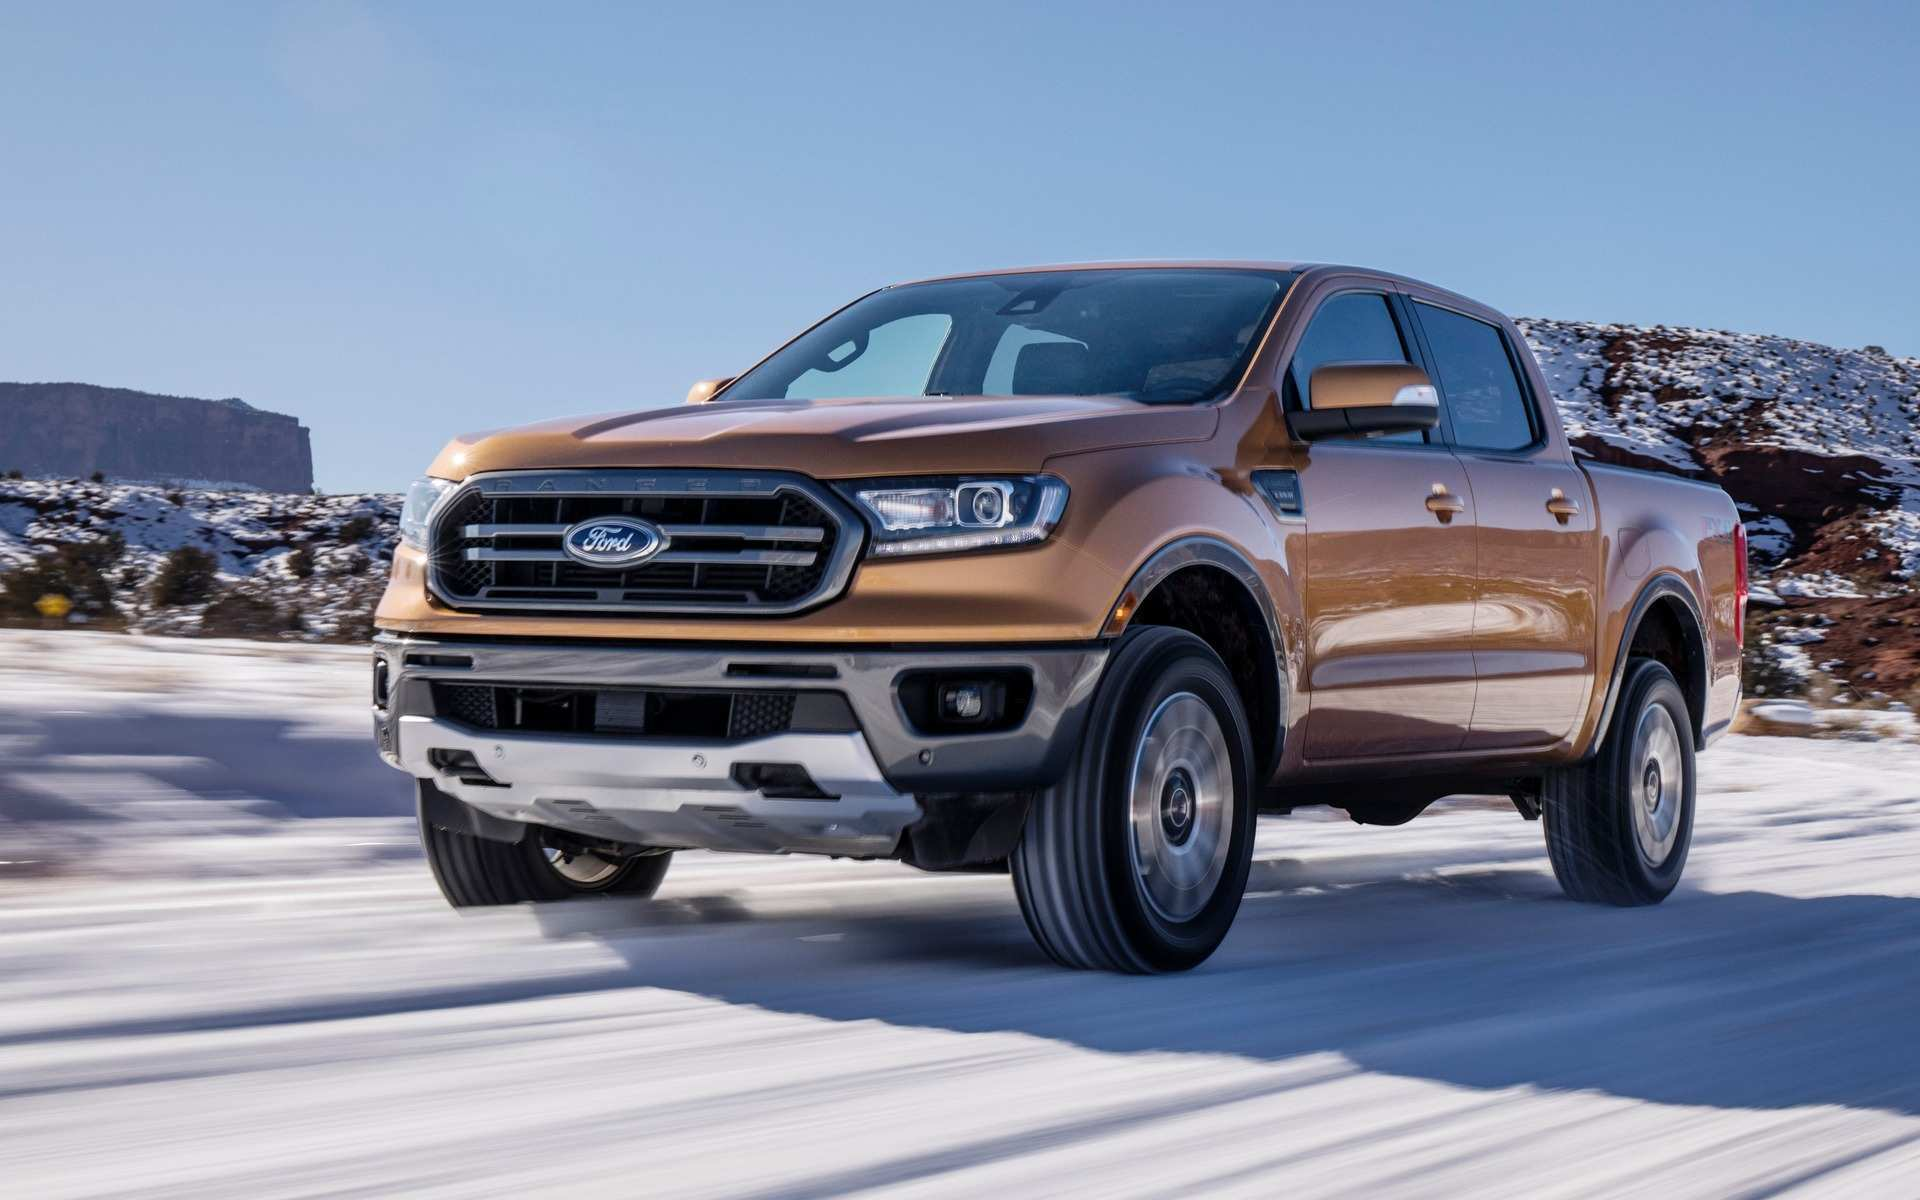 26 Concept of Best Ford Ranger 2019 Canada First Drive Engine for Best Ford Ranger 2019 Canada First Drive